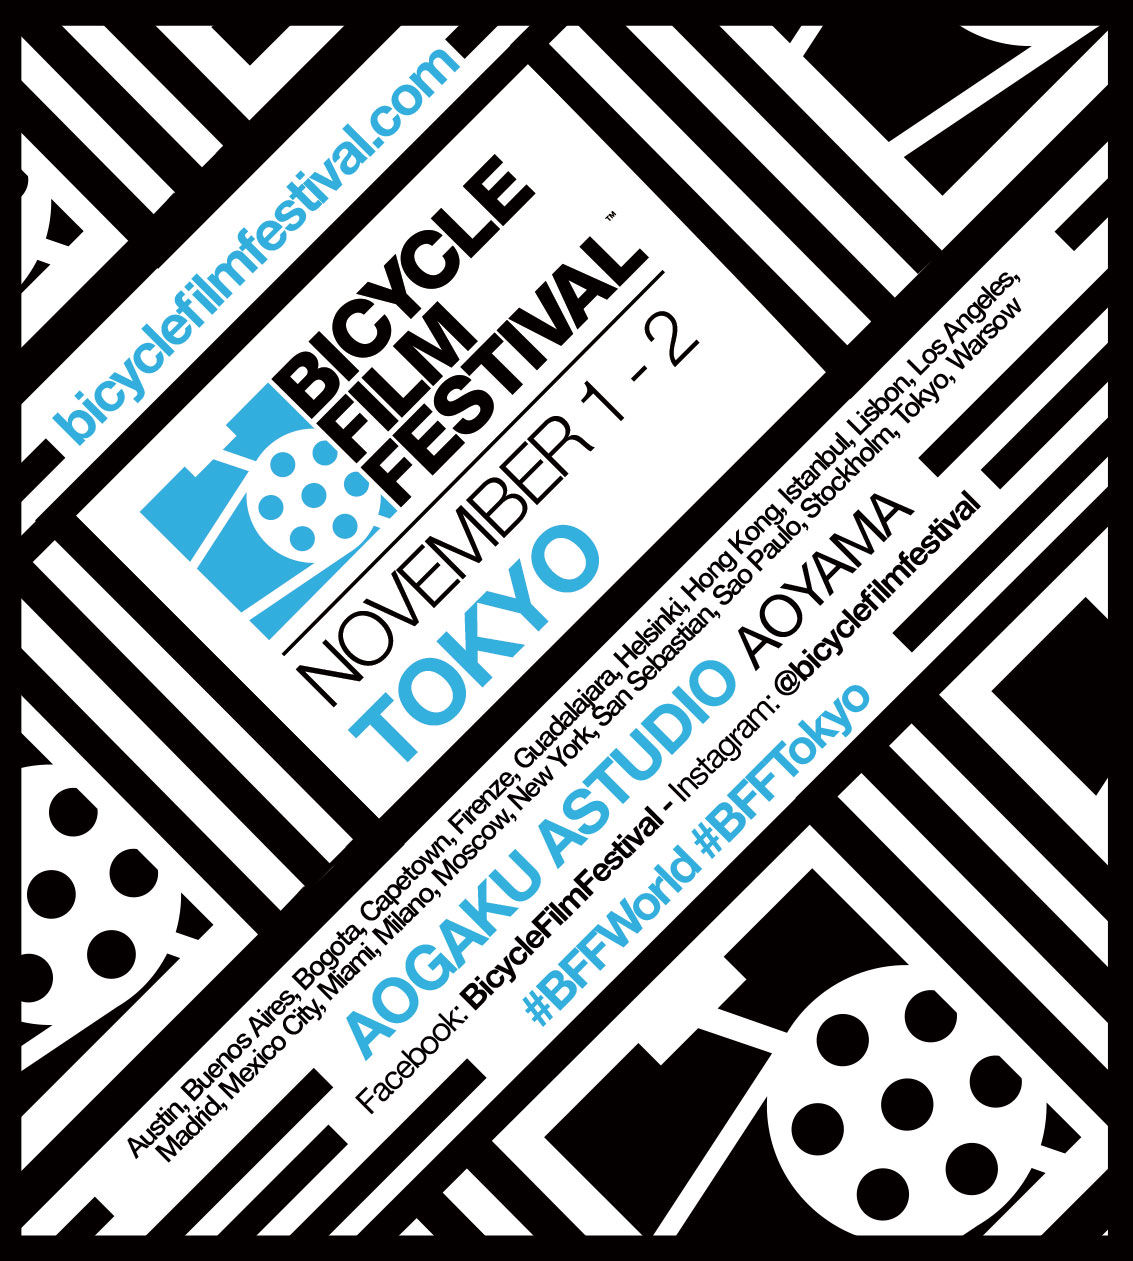 bicycle film festival 2014